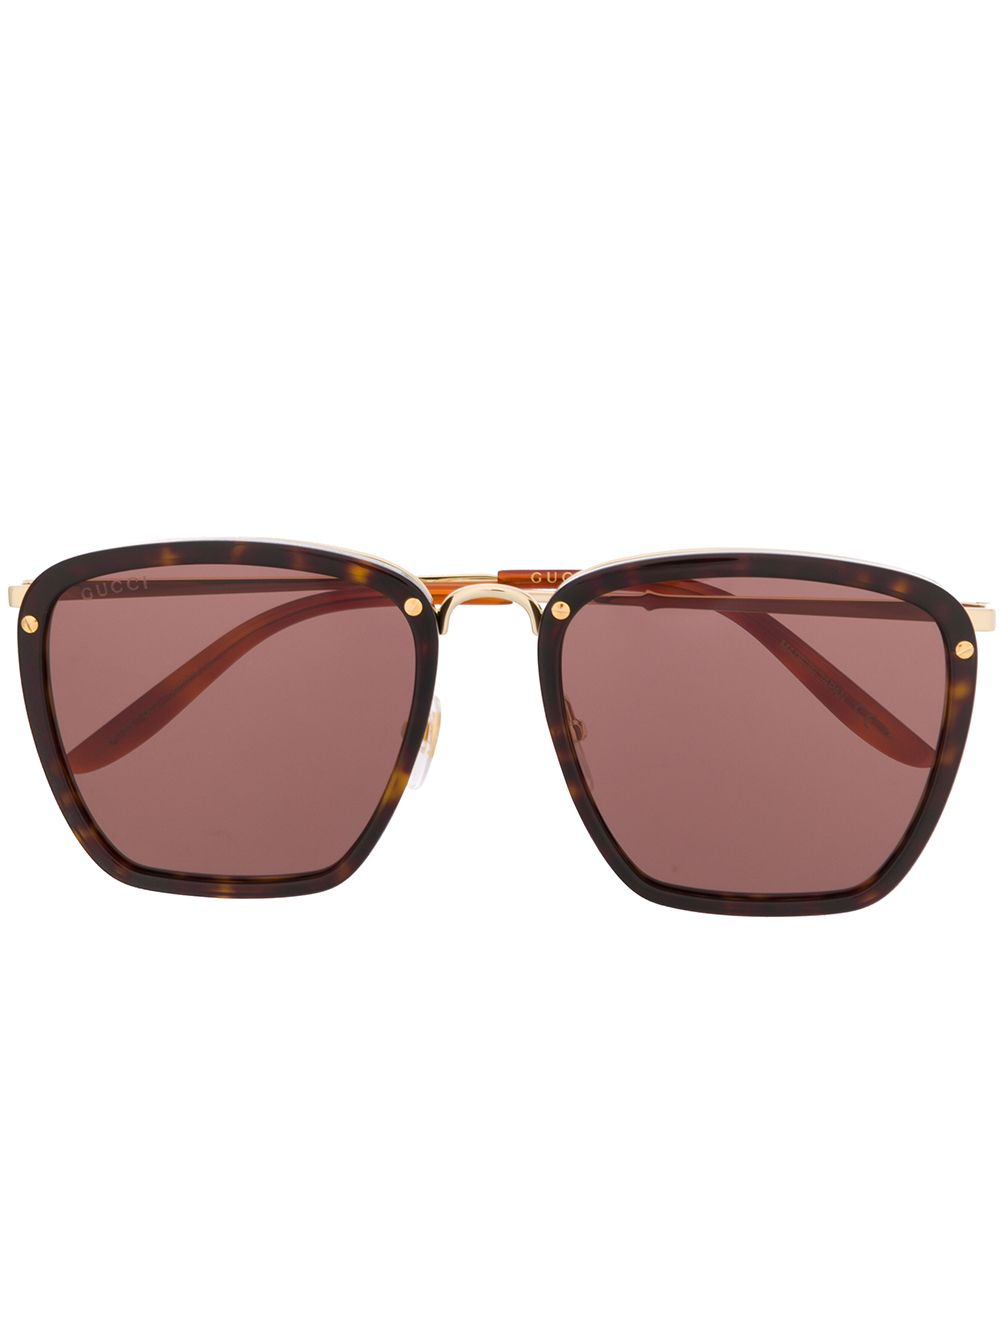 Gg0673s Sunglasses